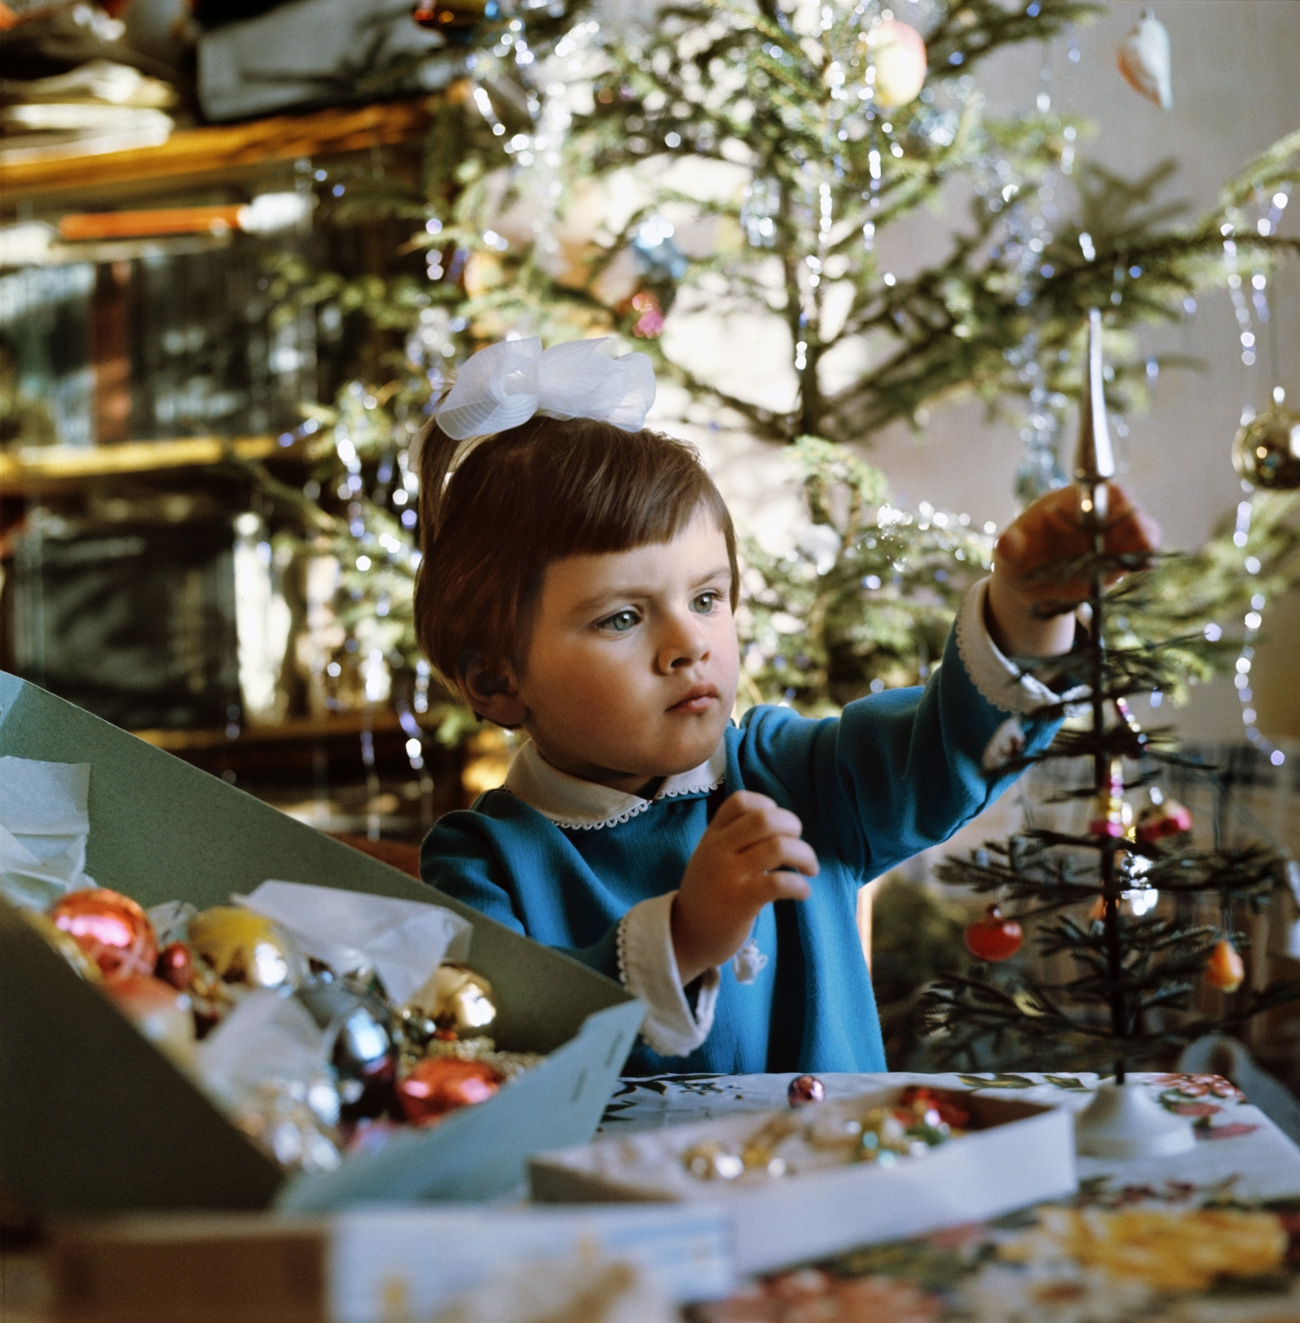 New Year is coming. A girl decorates a Christmas tree. 1973